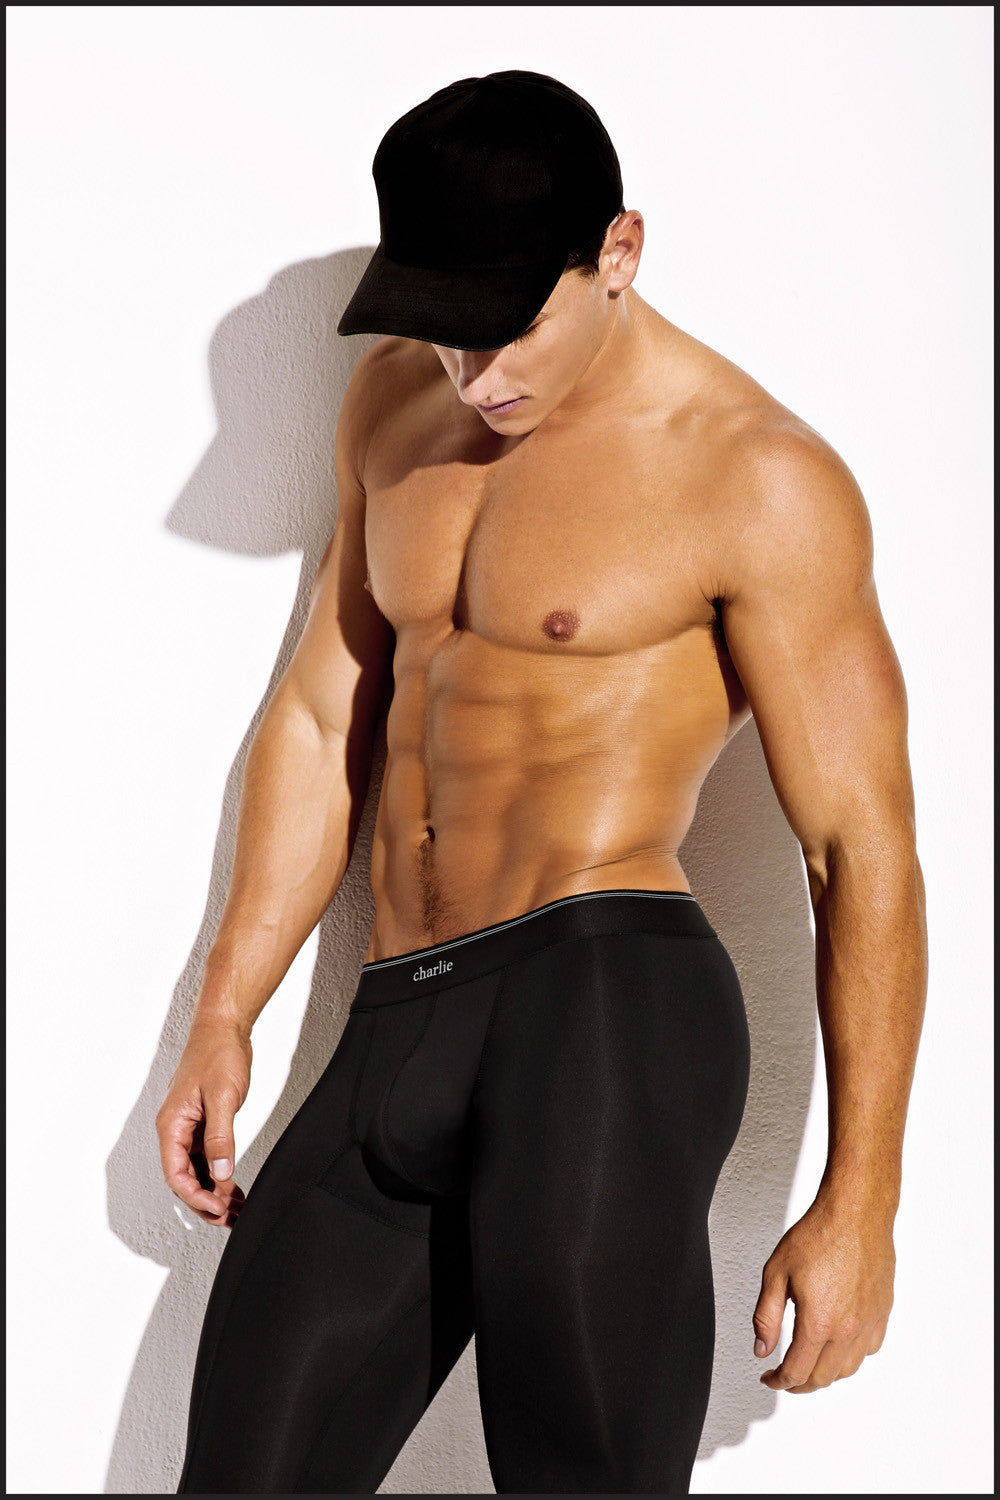 Charlie by Matthew Zink Fitness Underwear Firm Fitness Tight